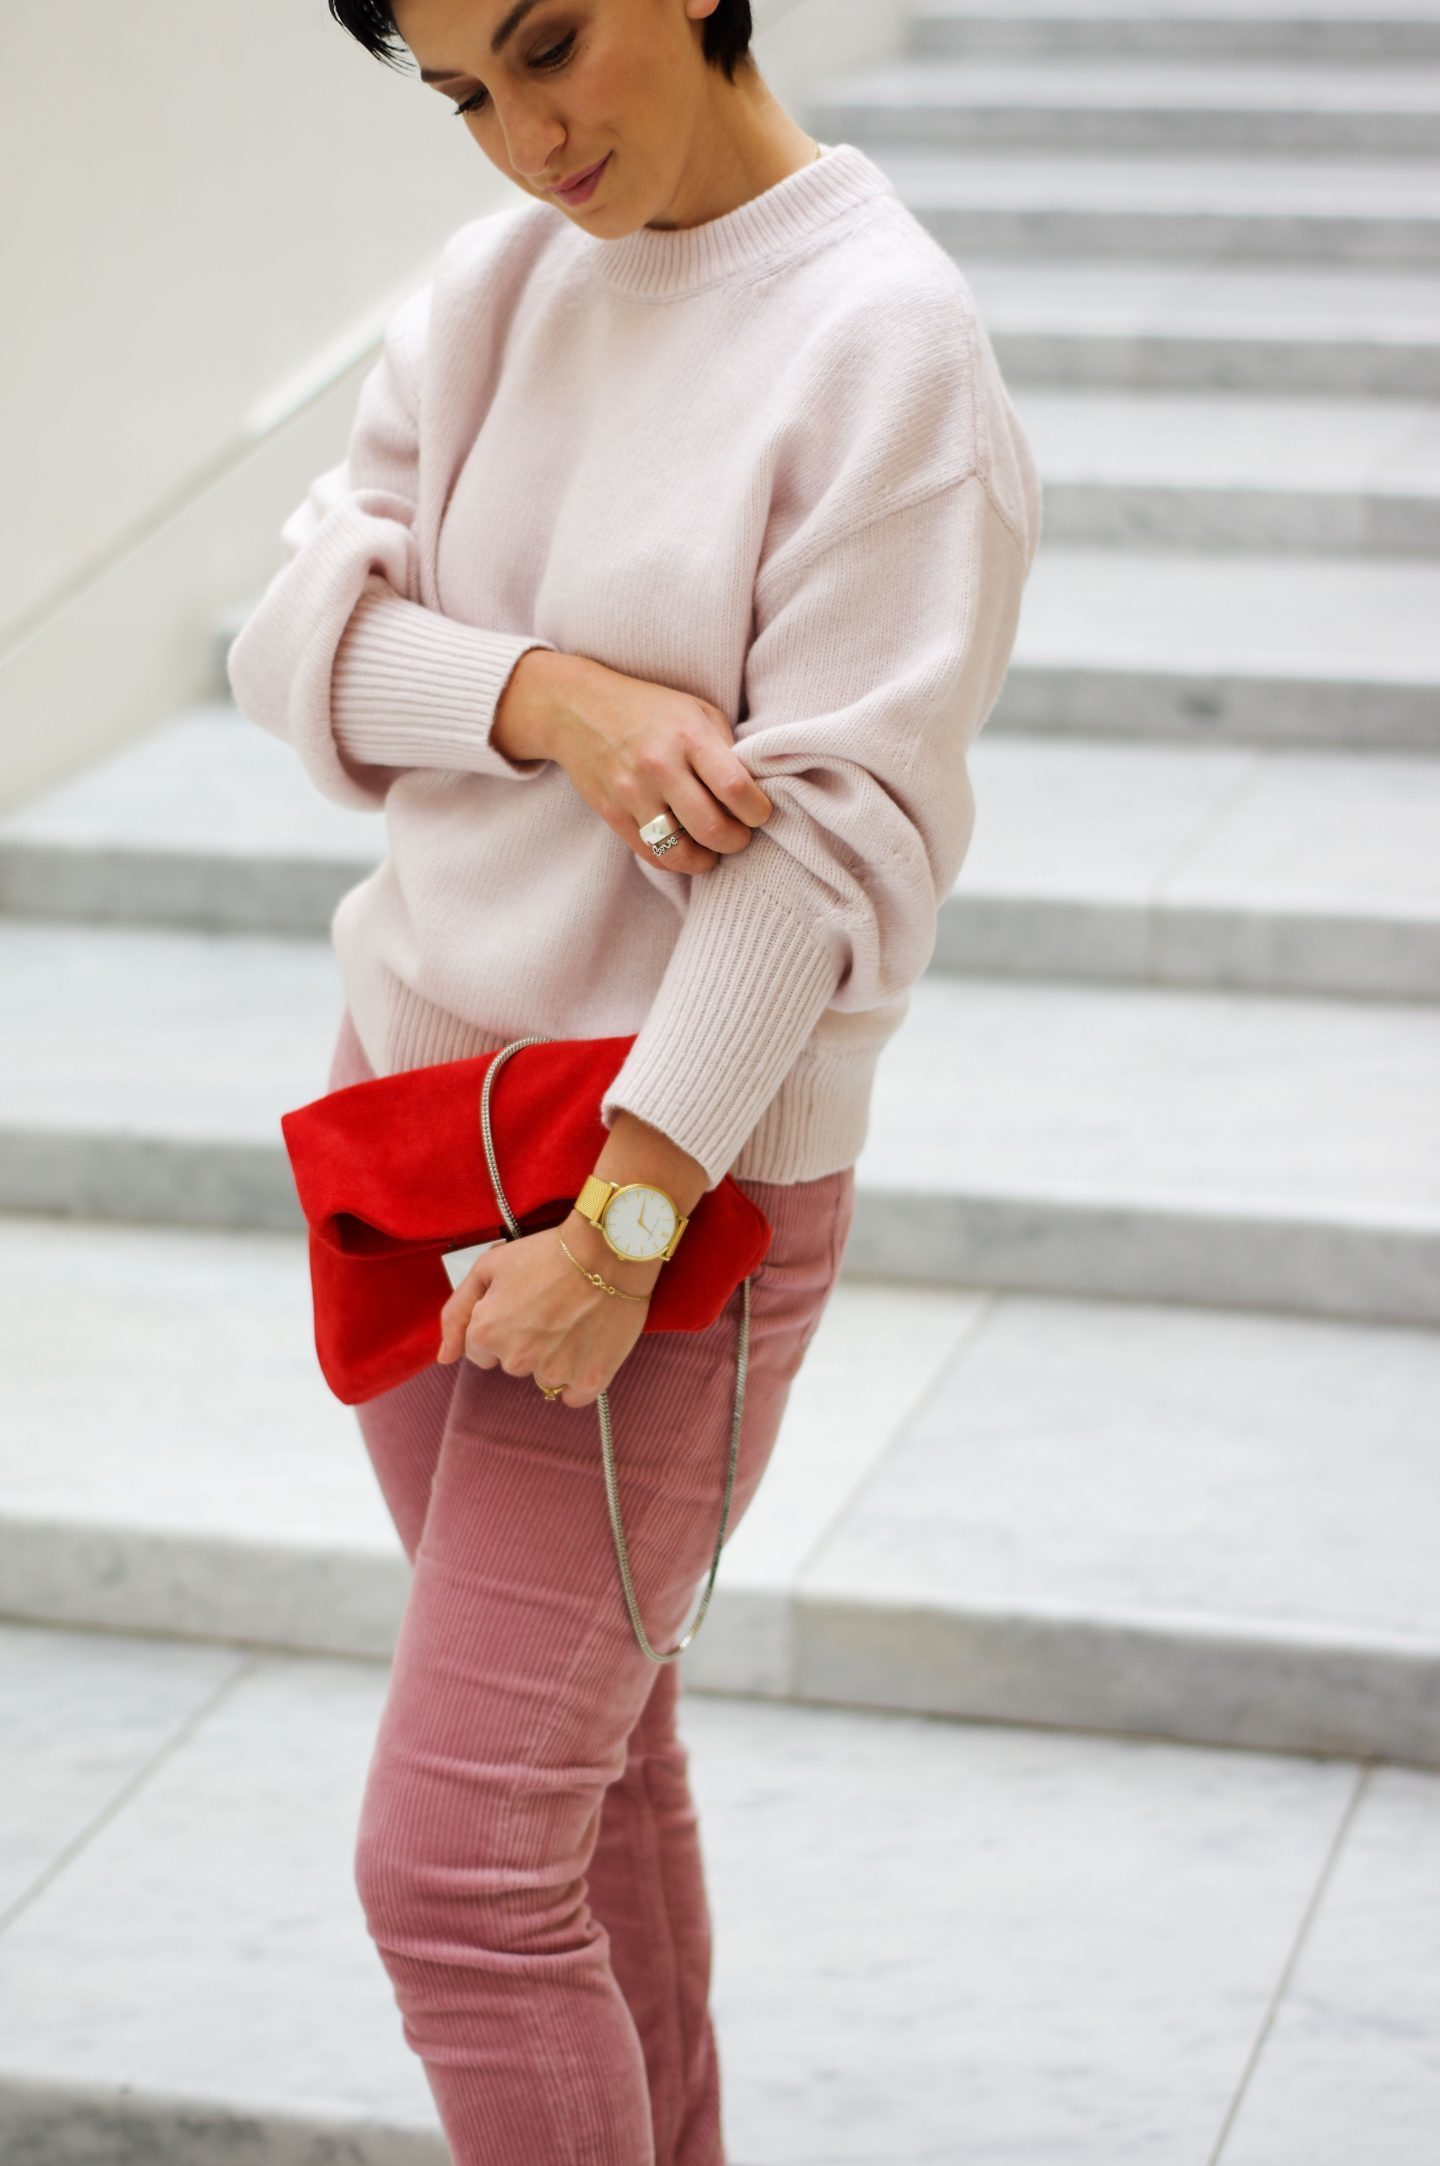 Corduroy trousers and sweater outfit pink and red combination